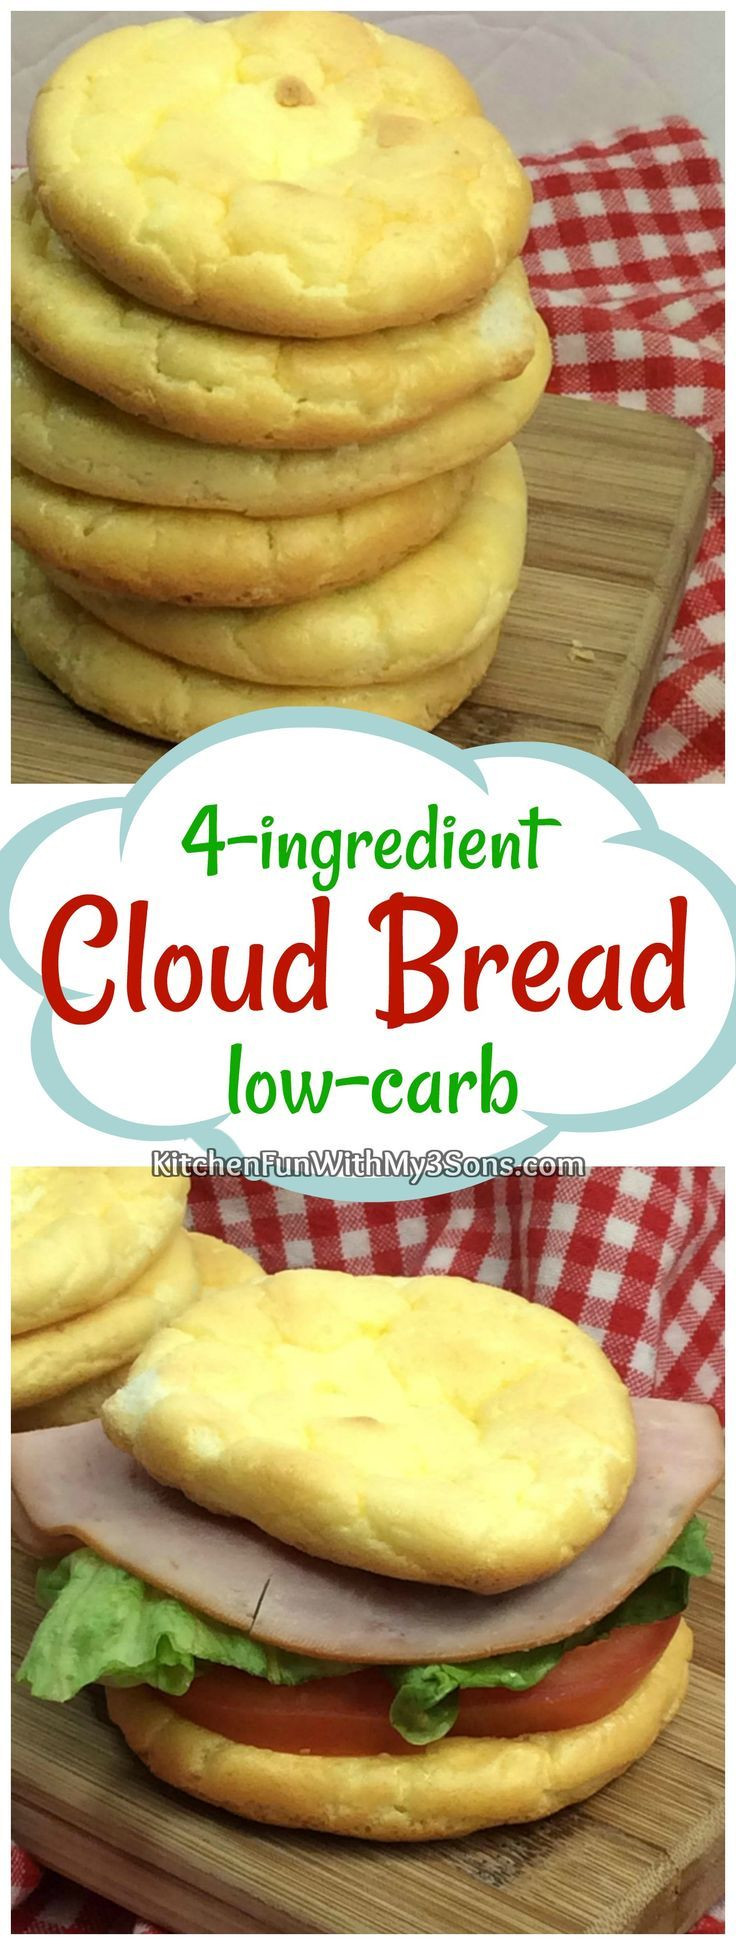 Atkins Cloud Bread  4 ingre nt Low Carb Cloud Bread With images